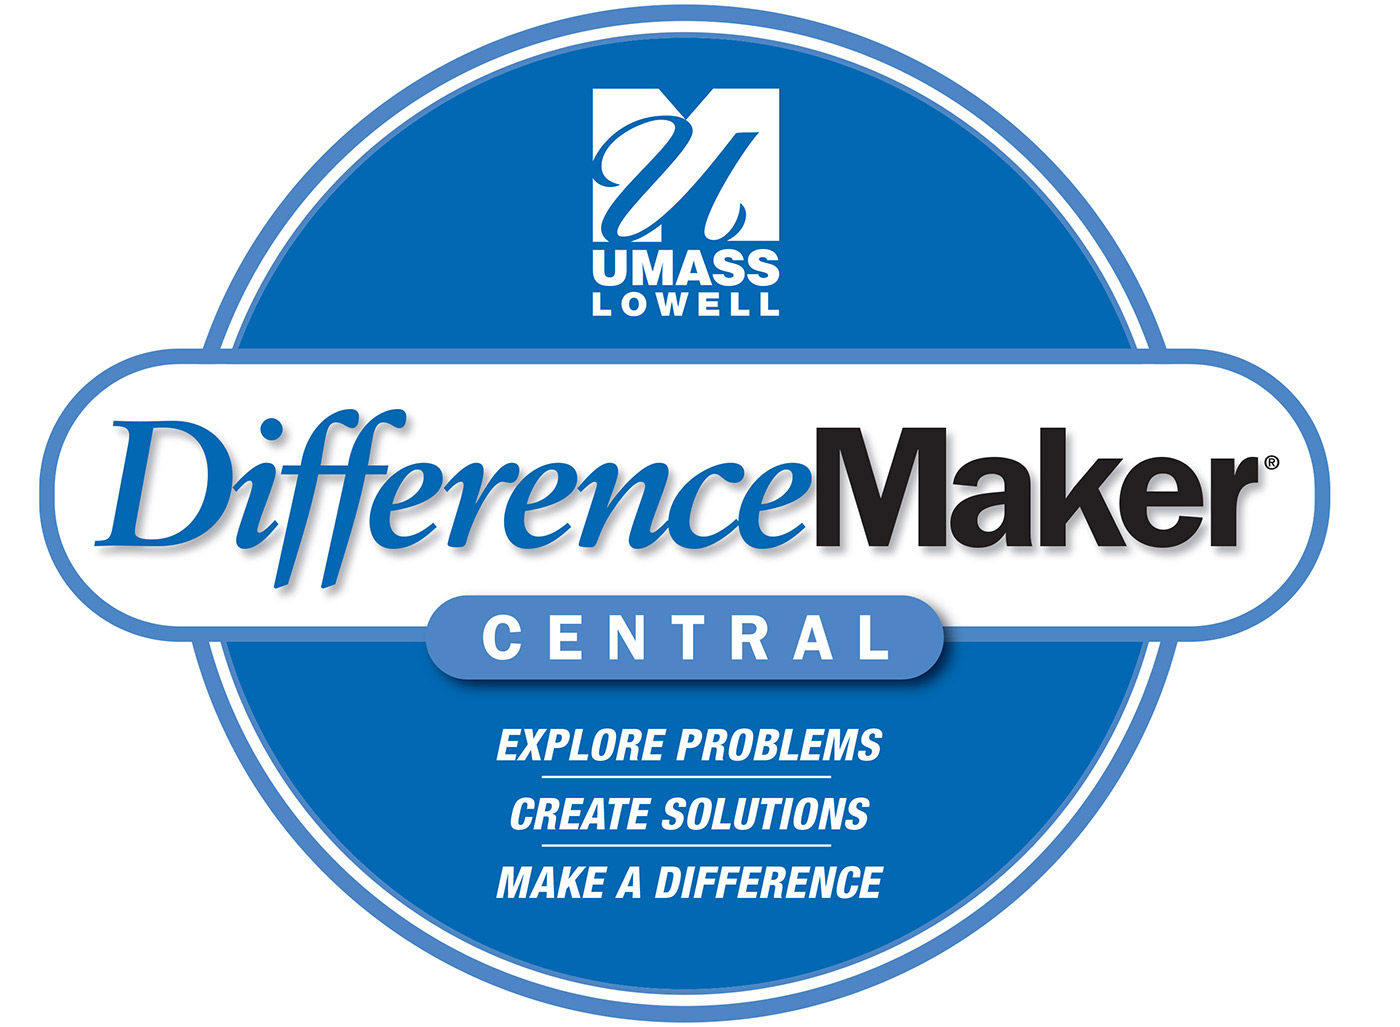 DifferenceMaker®is a campus-wide program that engages UMass Lowell students in creative problem solving, innovation and entrepreneurship.